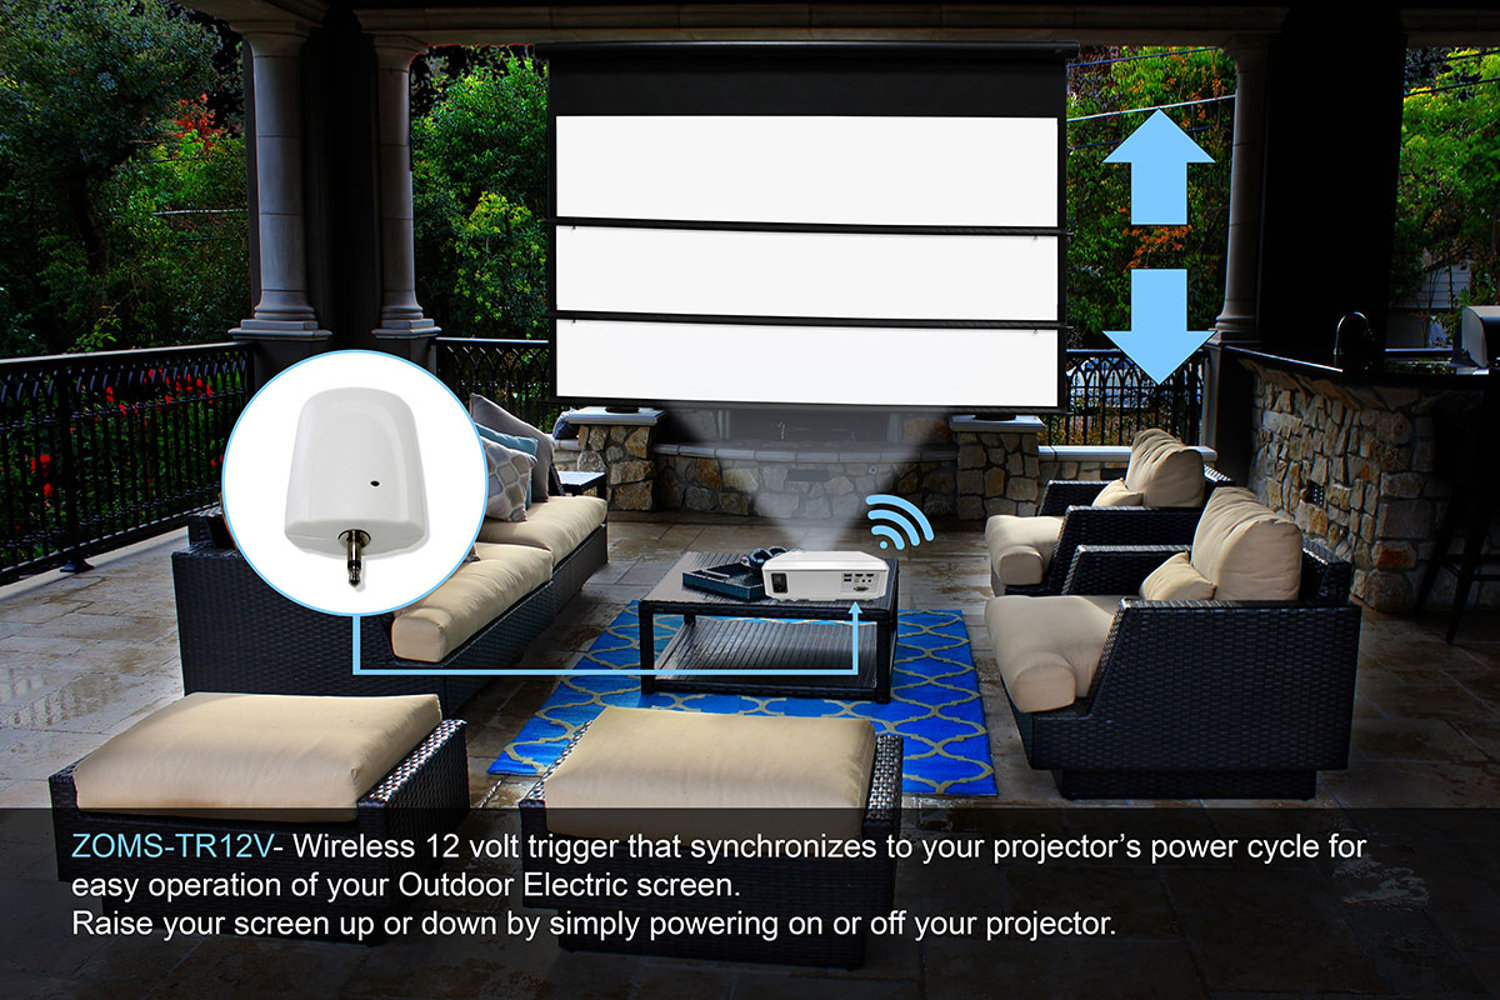 How to Sync Your Projector and Screen Without Any Wires - Electronic House